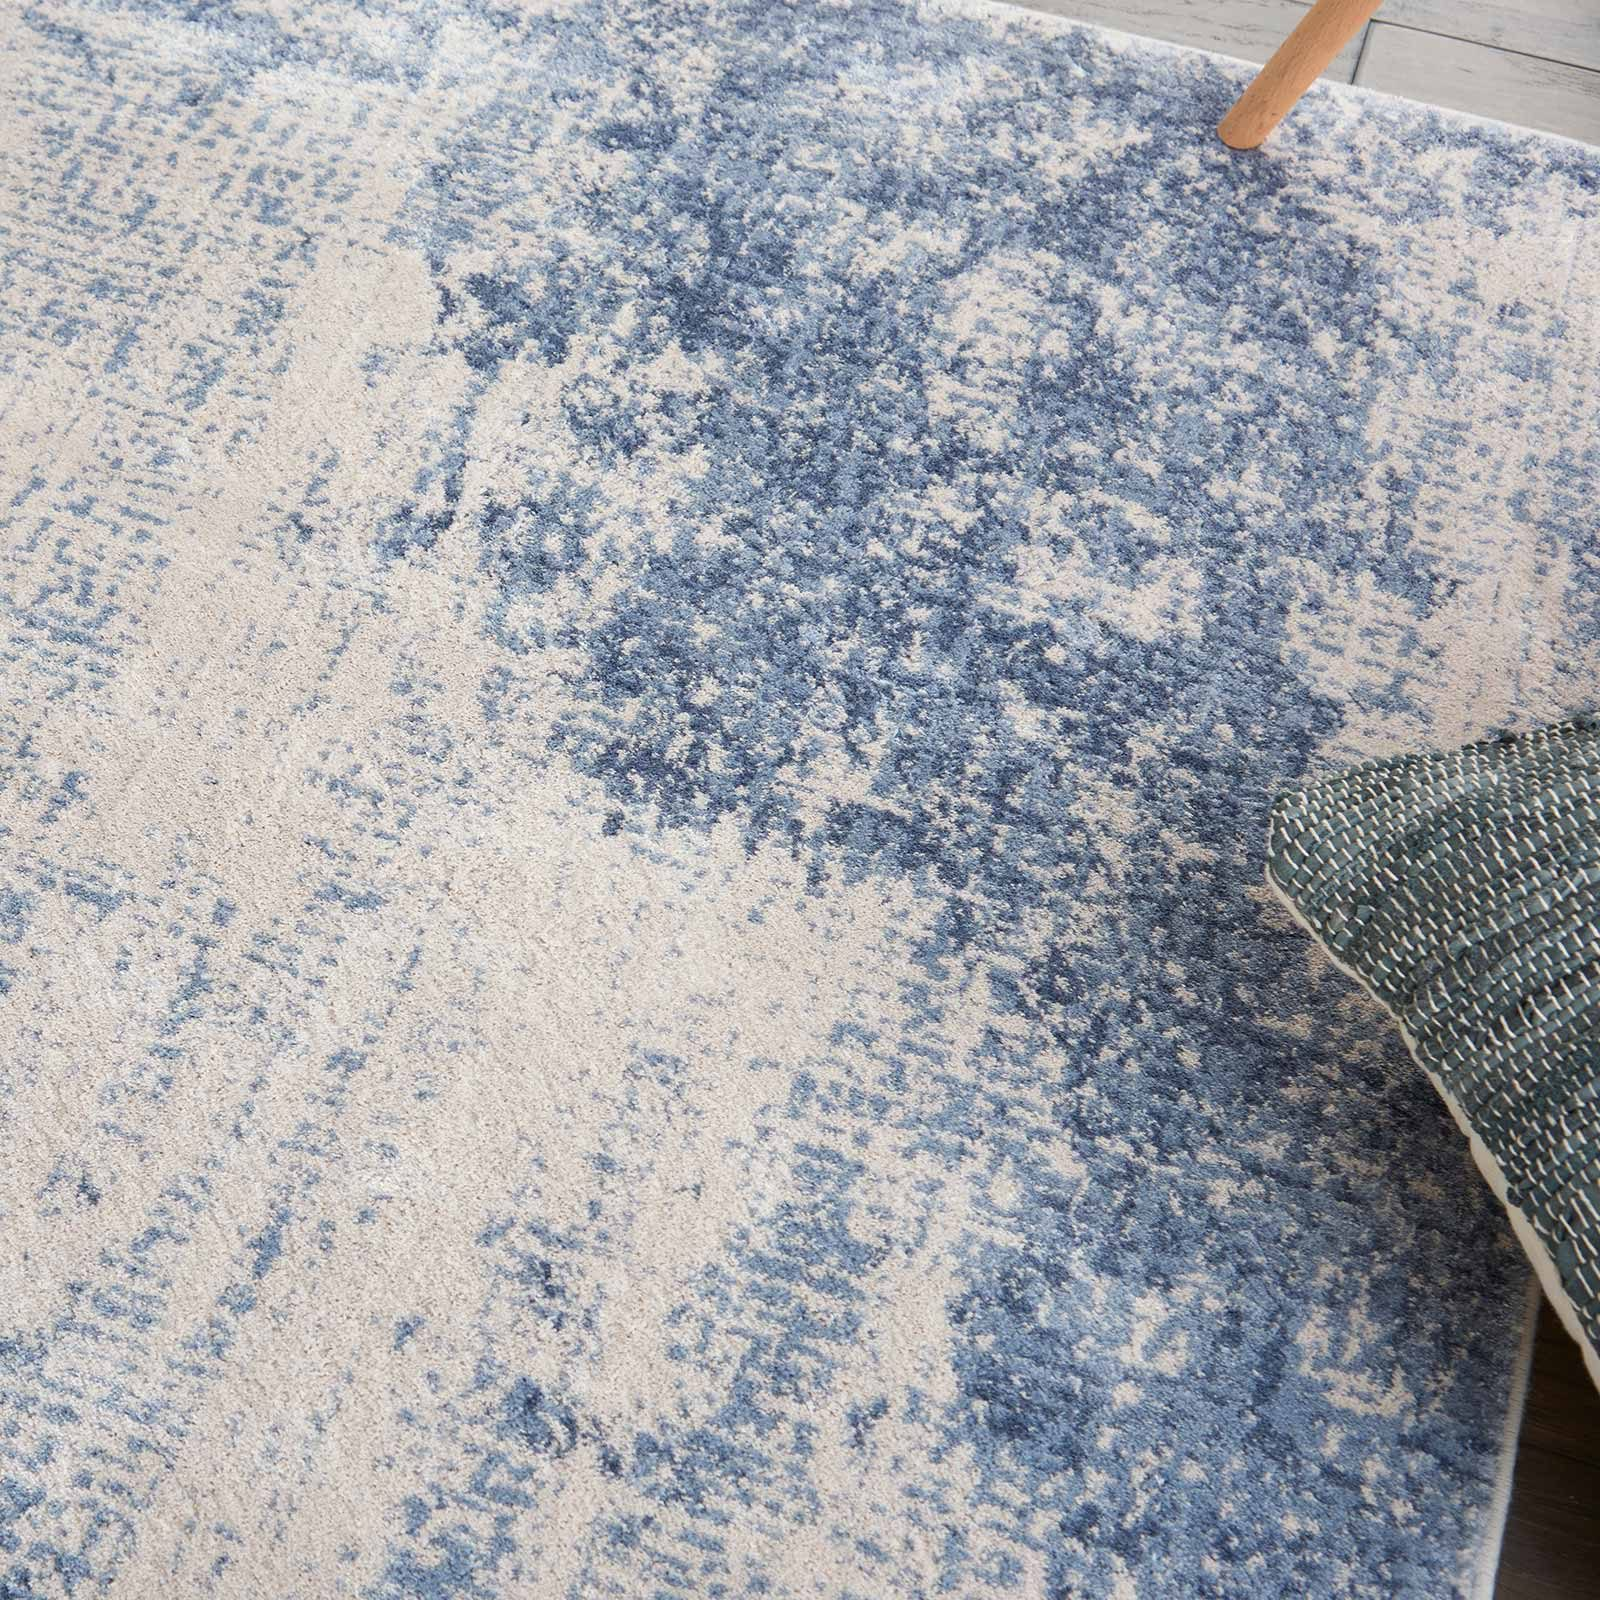 Andessi tapijt Silky Textures SLY01 IVORY BLUE 4x6 099446709677 interior 2 C